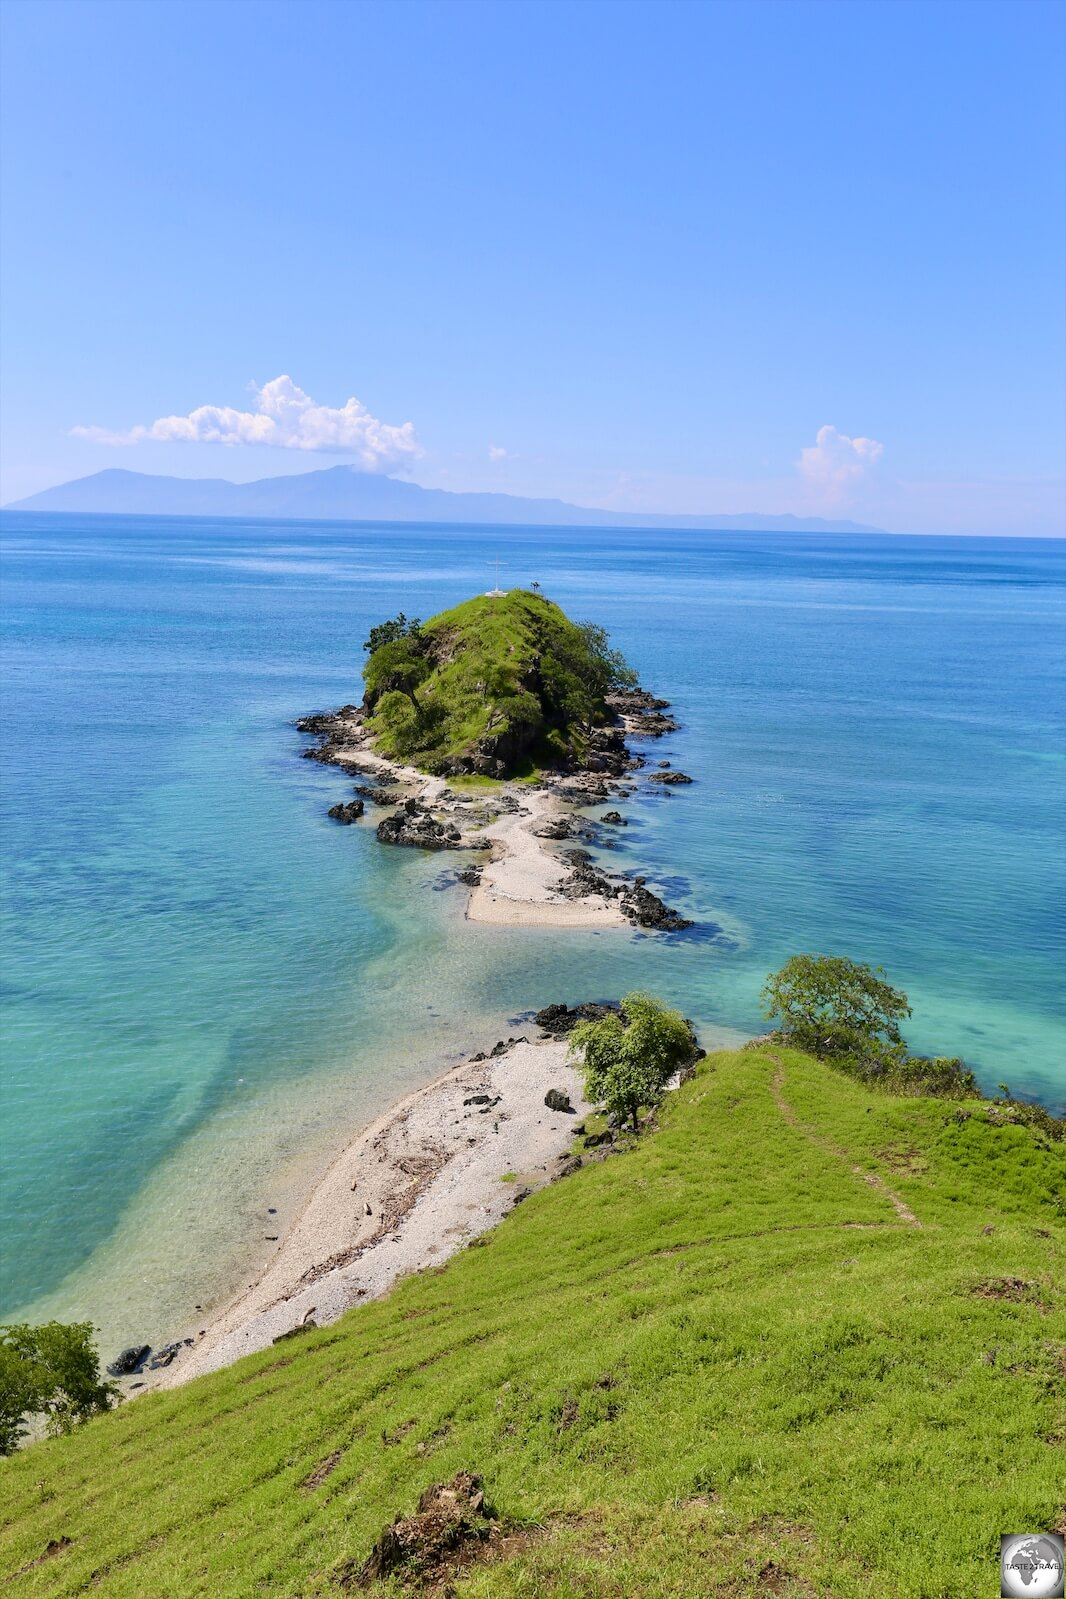 A typical north coast view on Timor-Leste.